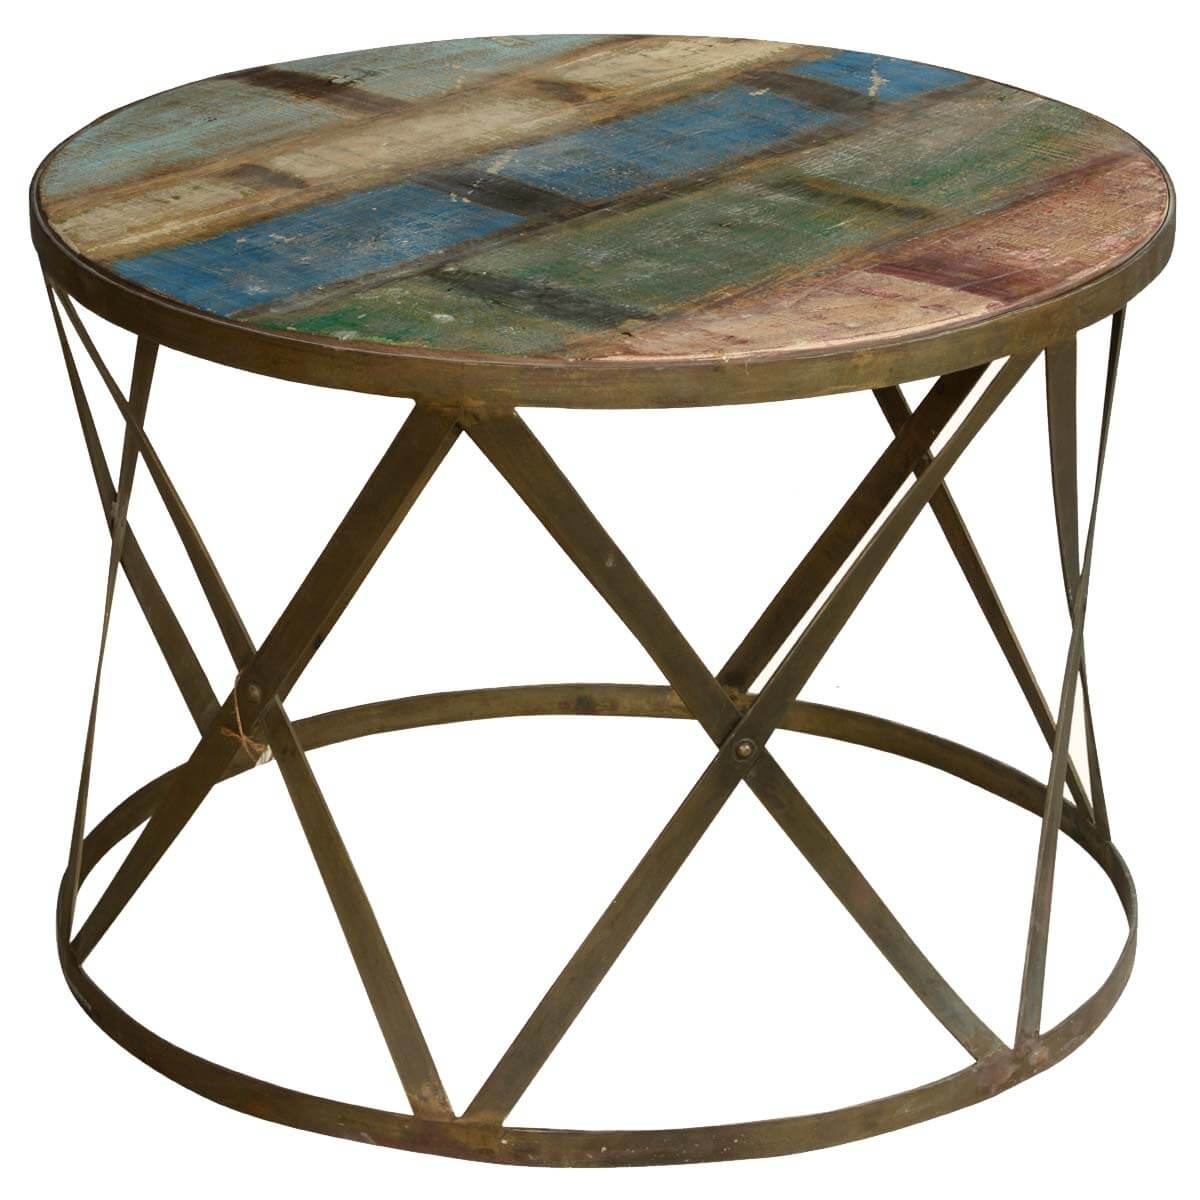 Retro Style Solid Wood And Iron Round Coffee Table